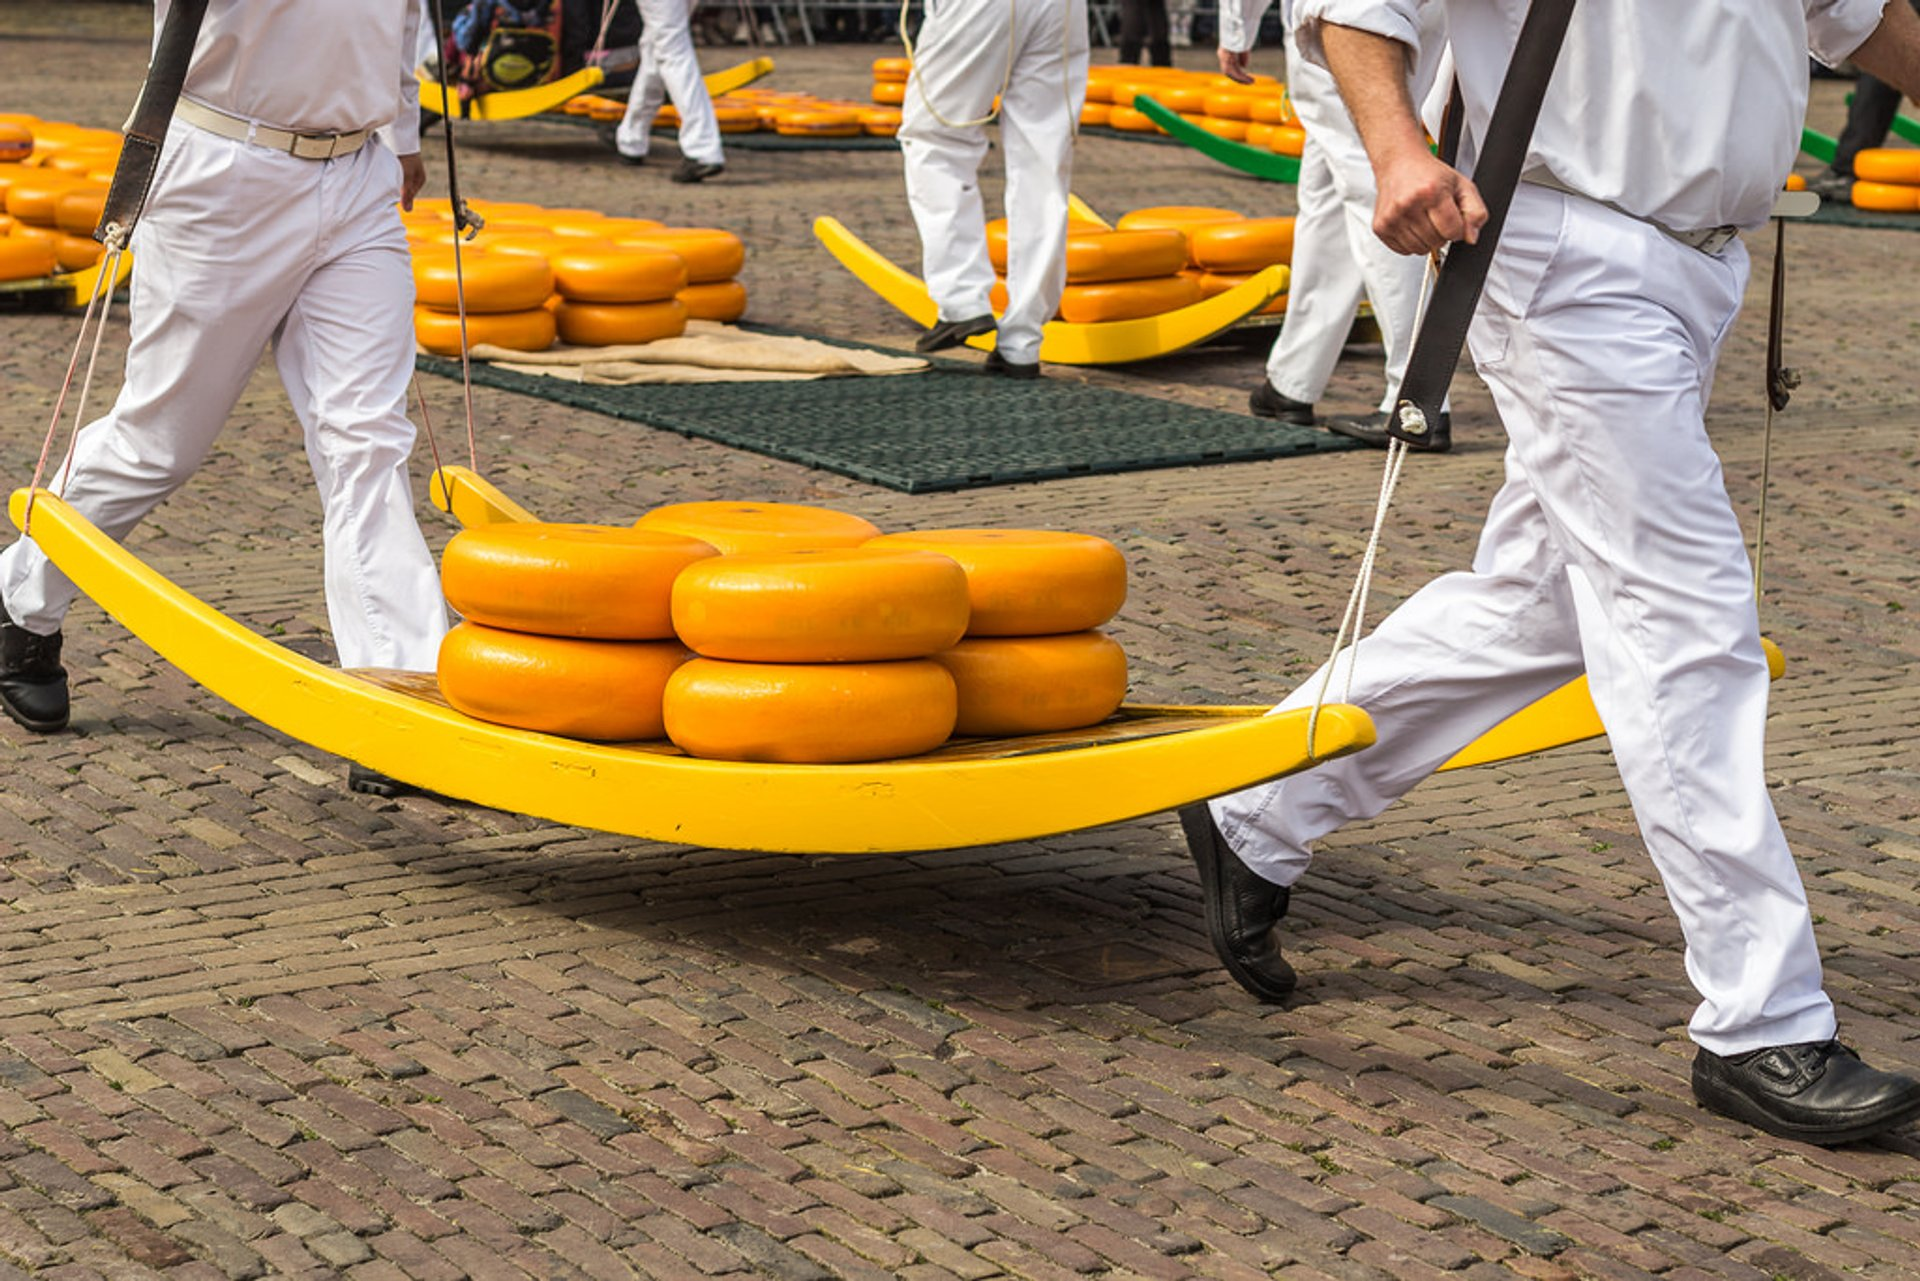 Alkmaar Cheese Market in The Netherlands 2020 - Best Time